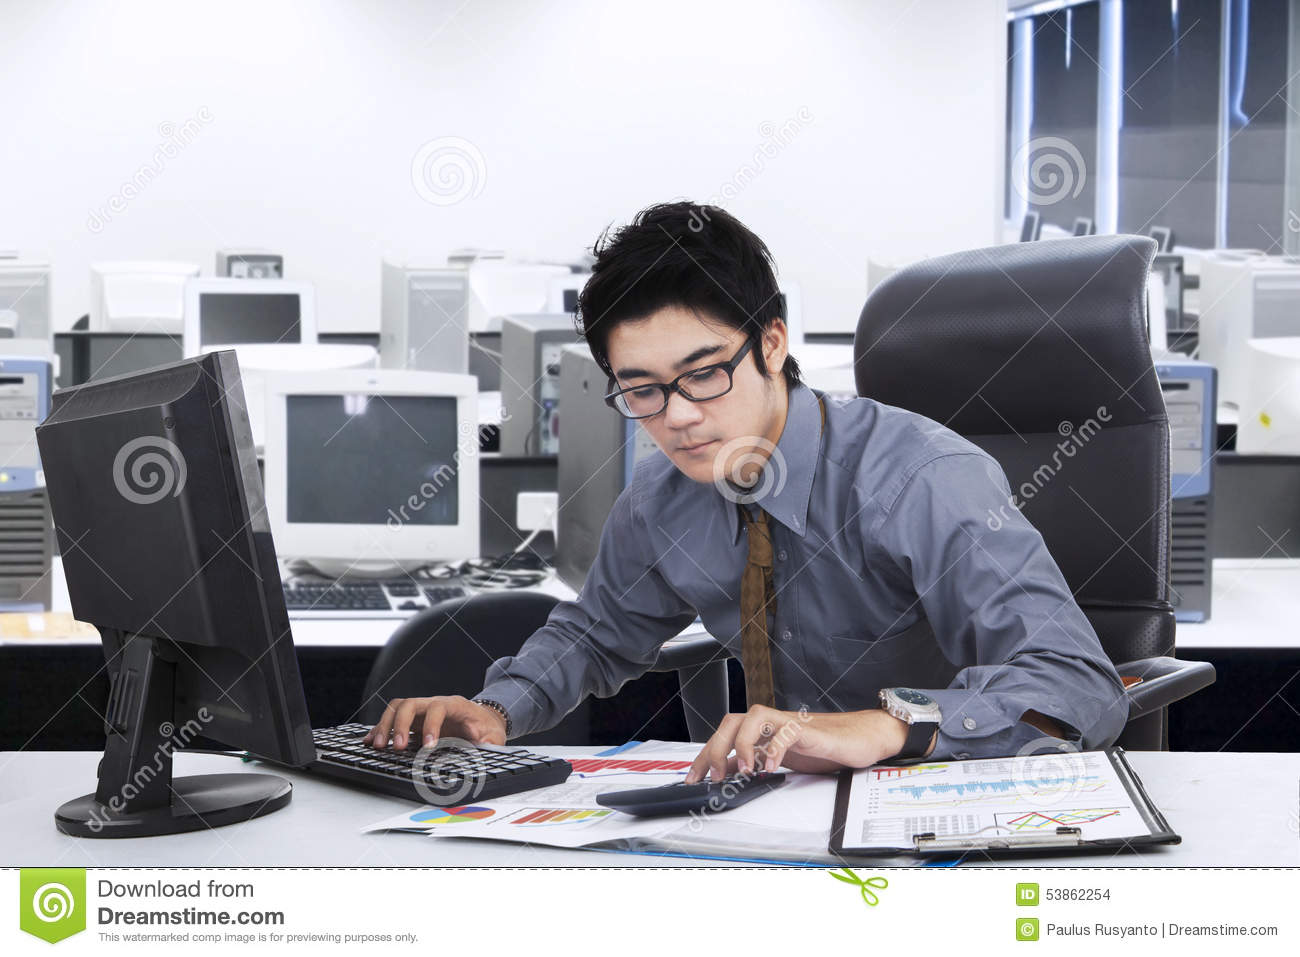 Male Manager Doing His Job In Office Stock Photo - Image of chart